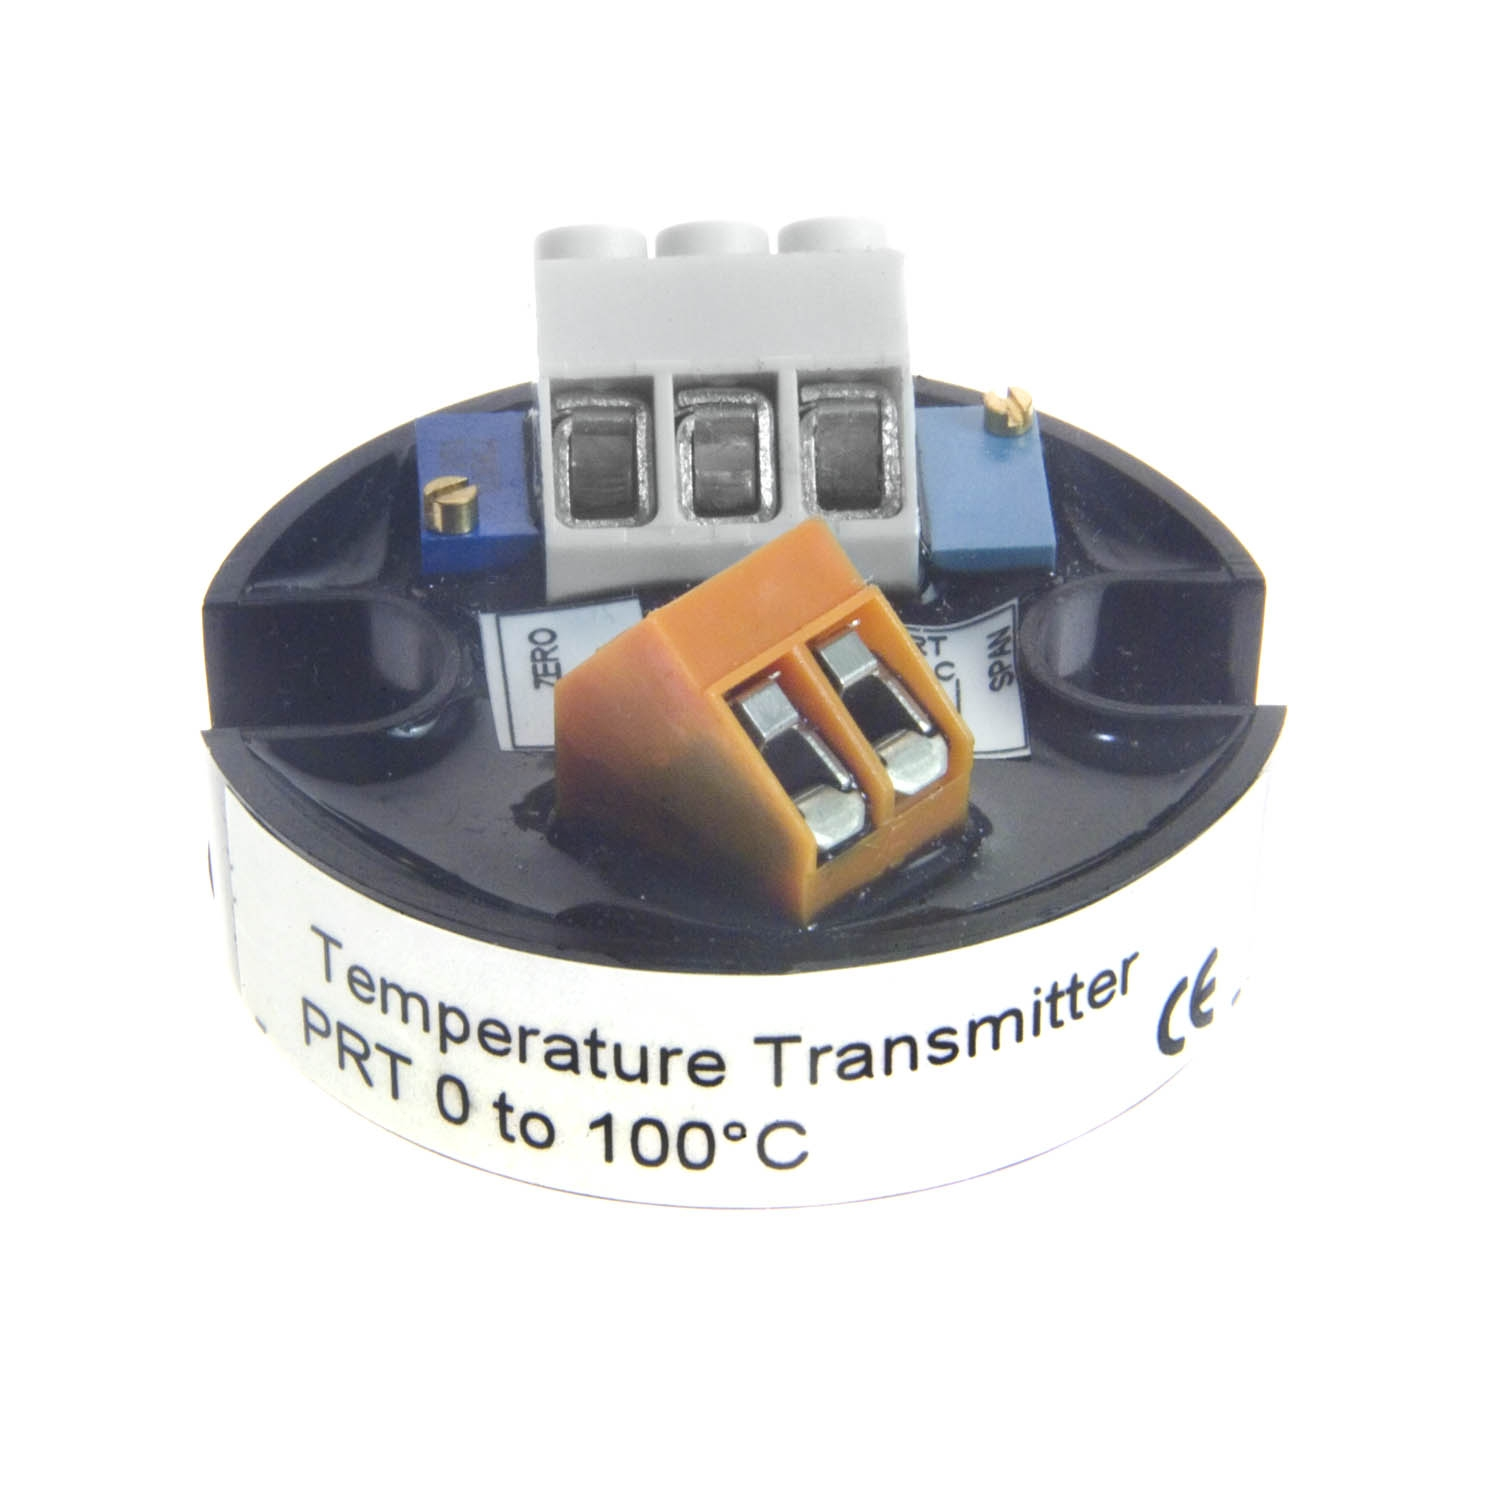 300TXL High Accuracy, Low Profile, 2 Wire Temperature Transmitter